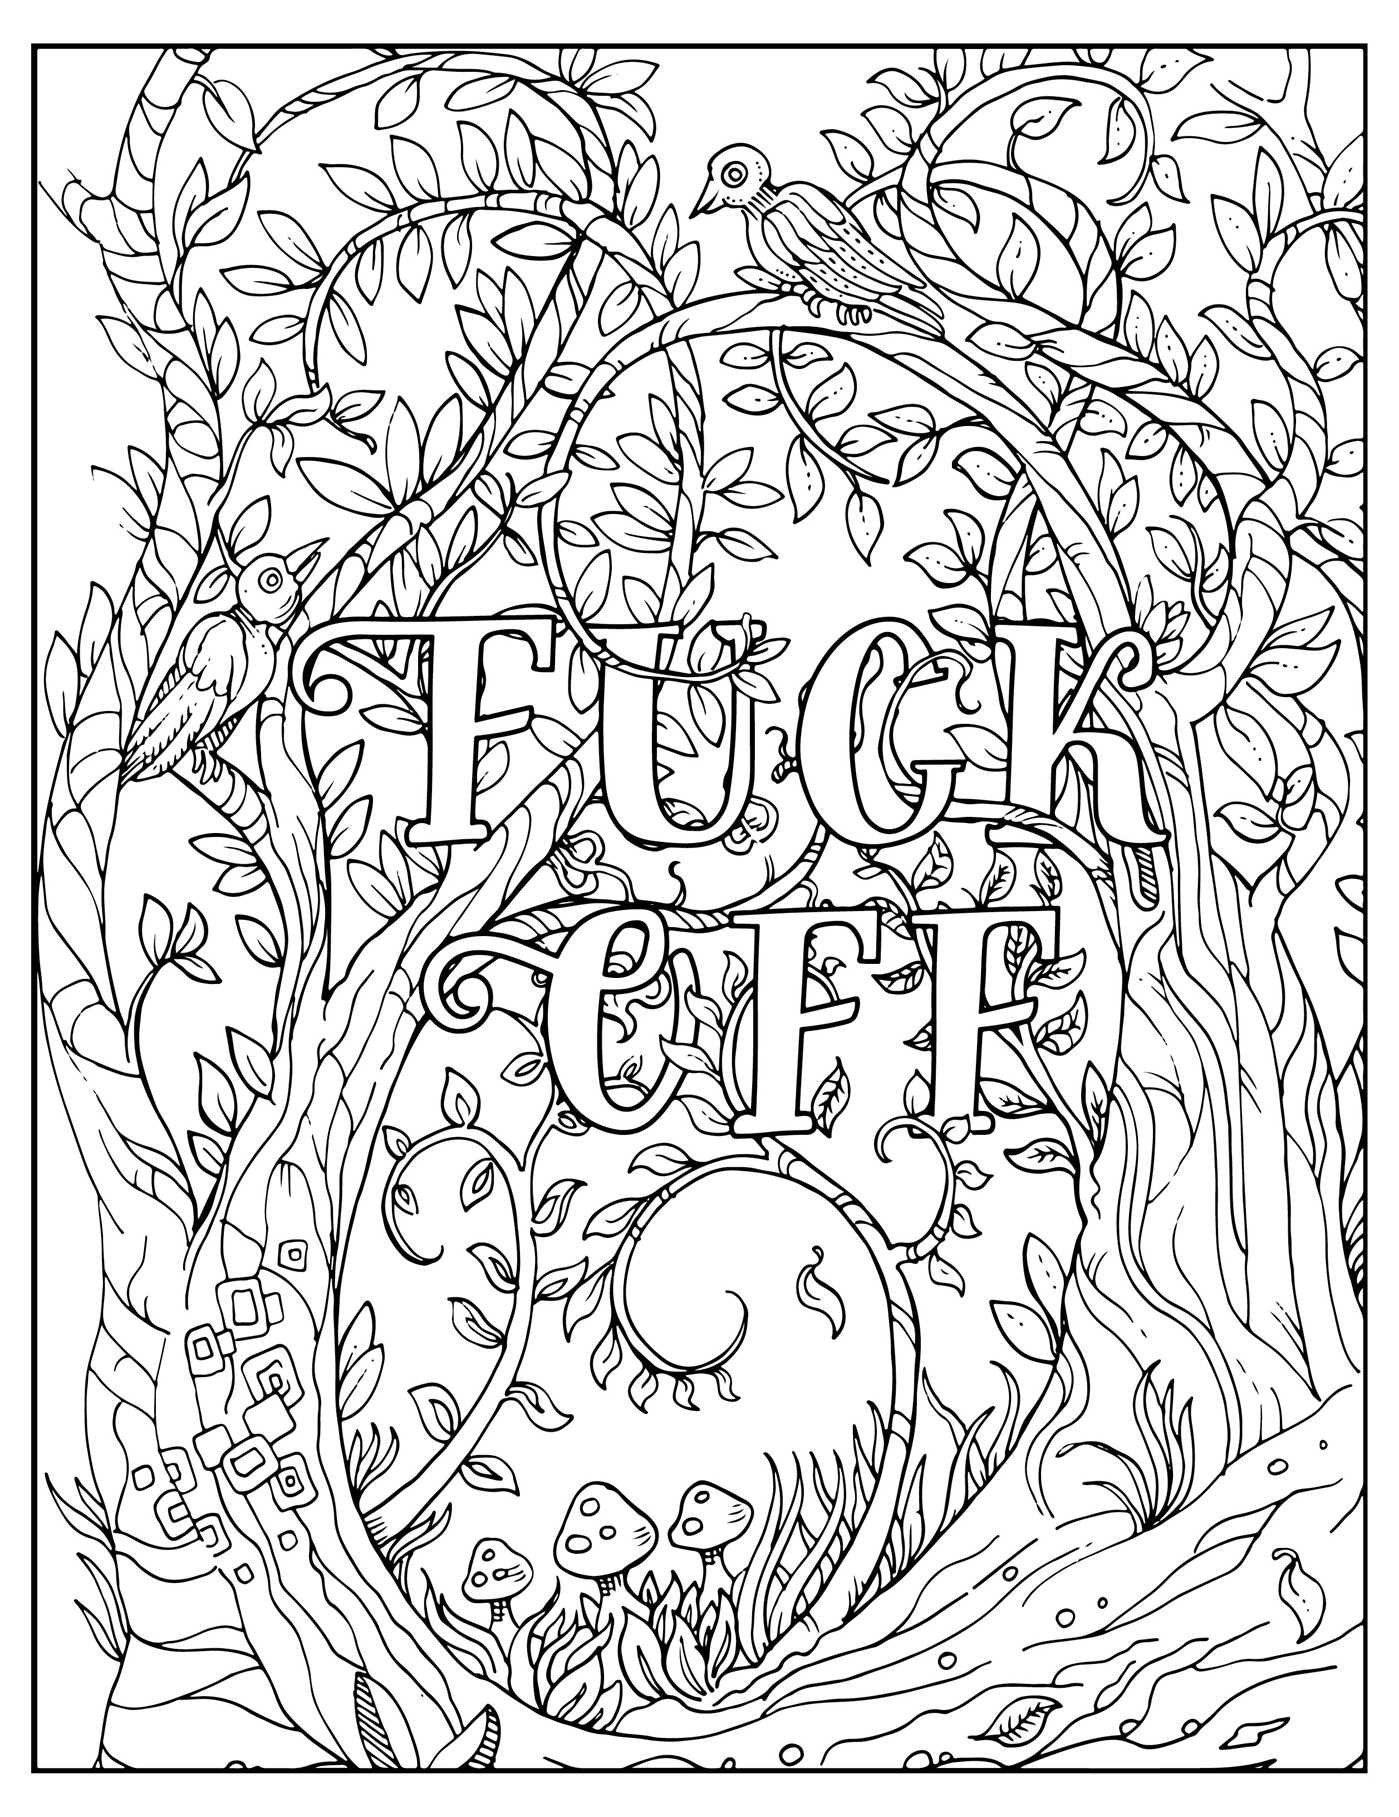 Fuck Off Ium Coloring Unwind with Obnoxiously Fun Swear Word